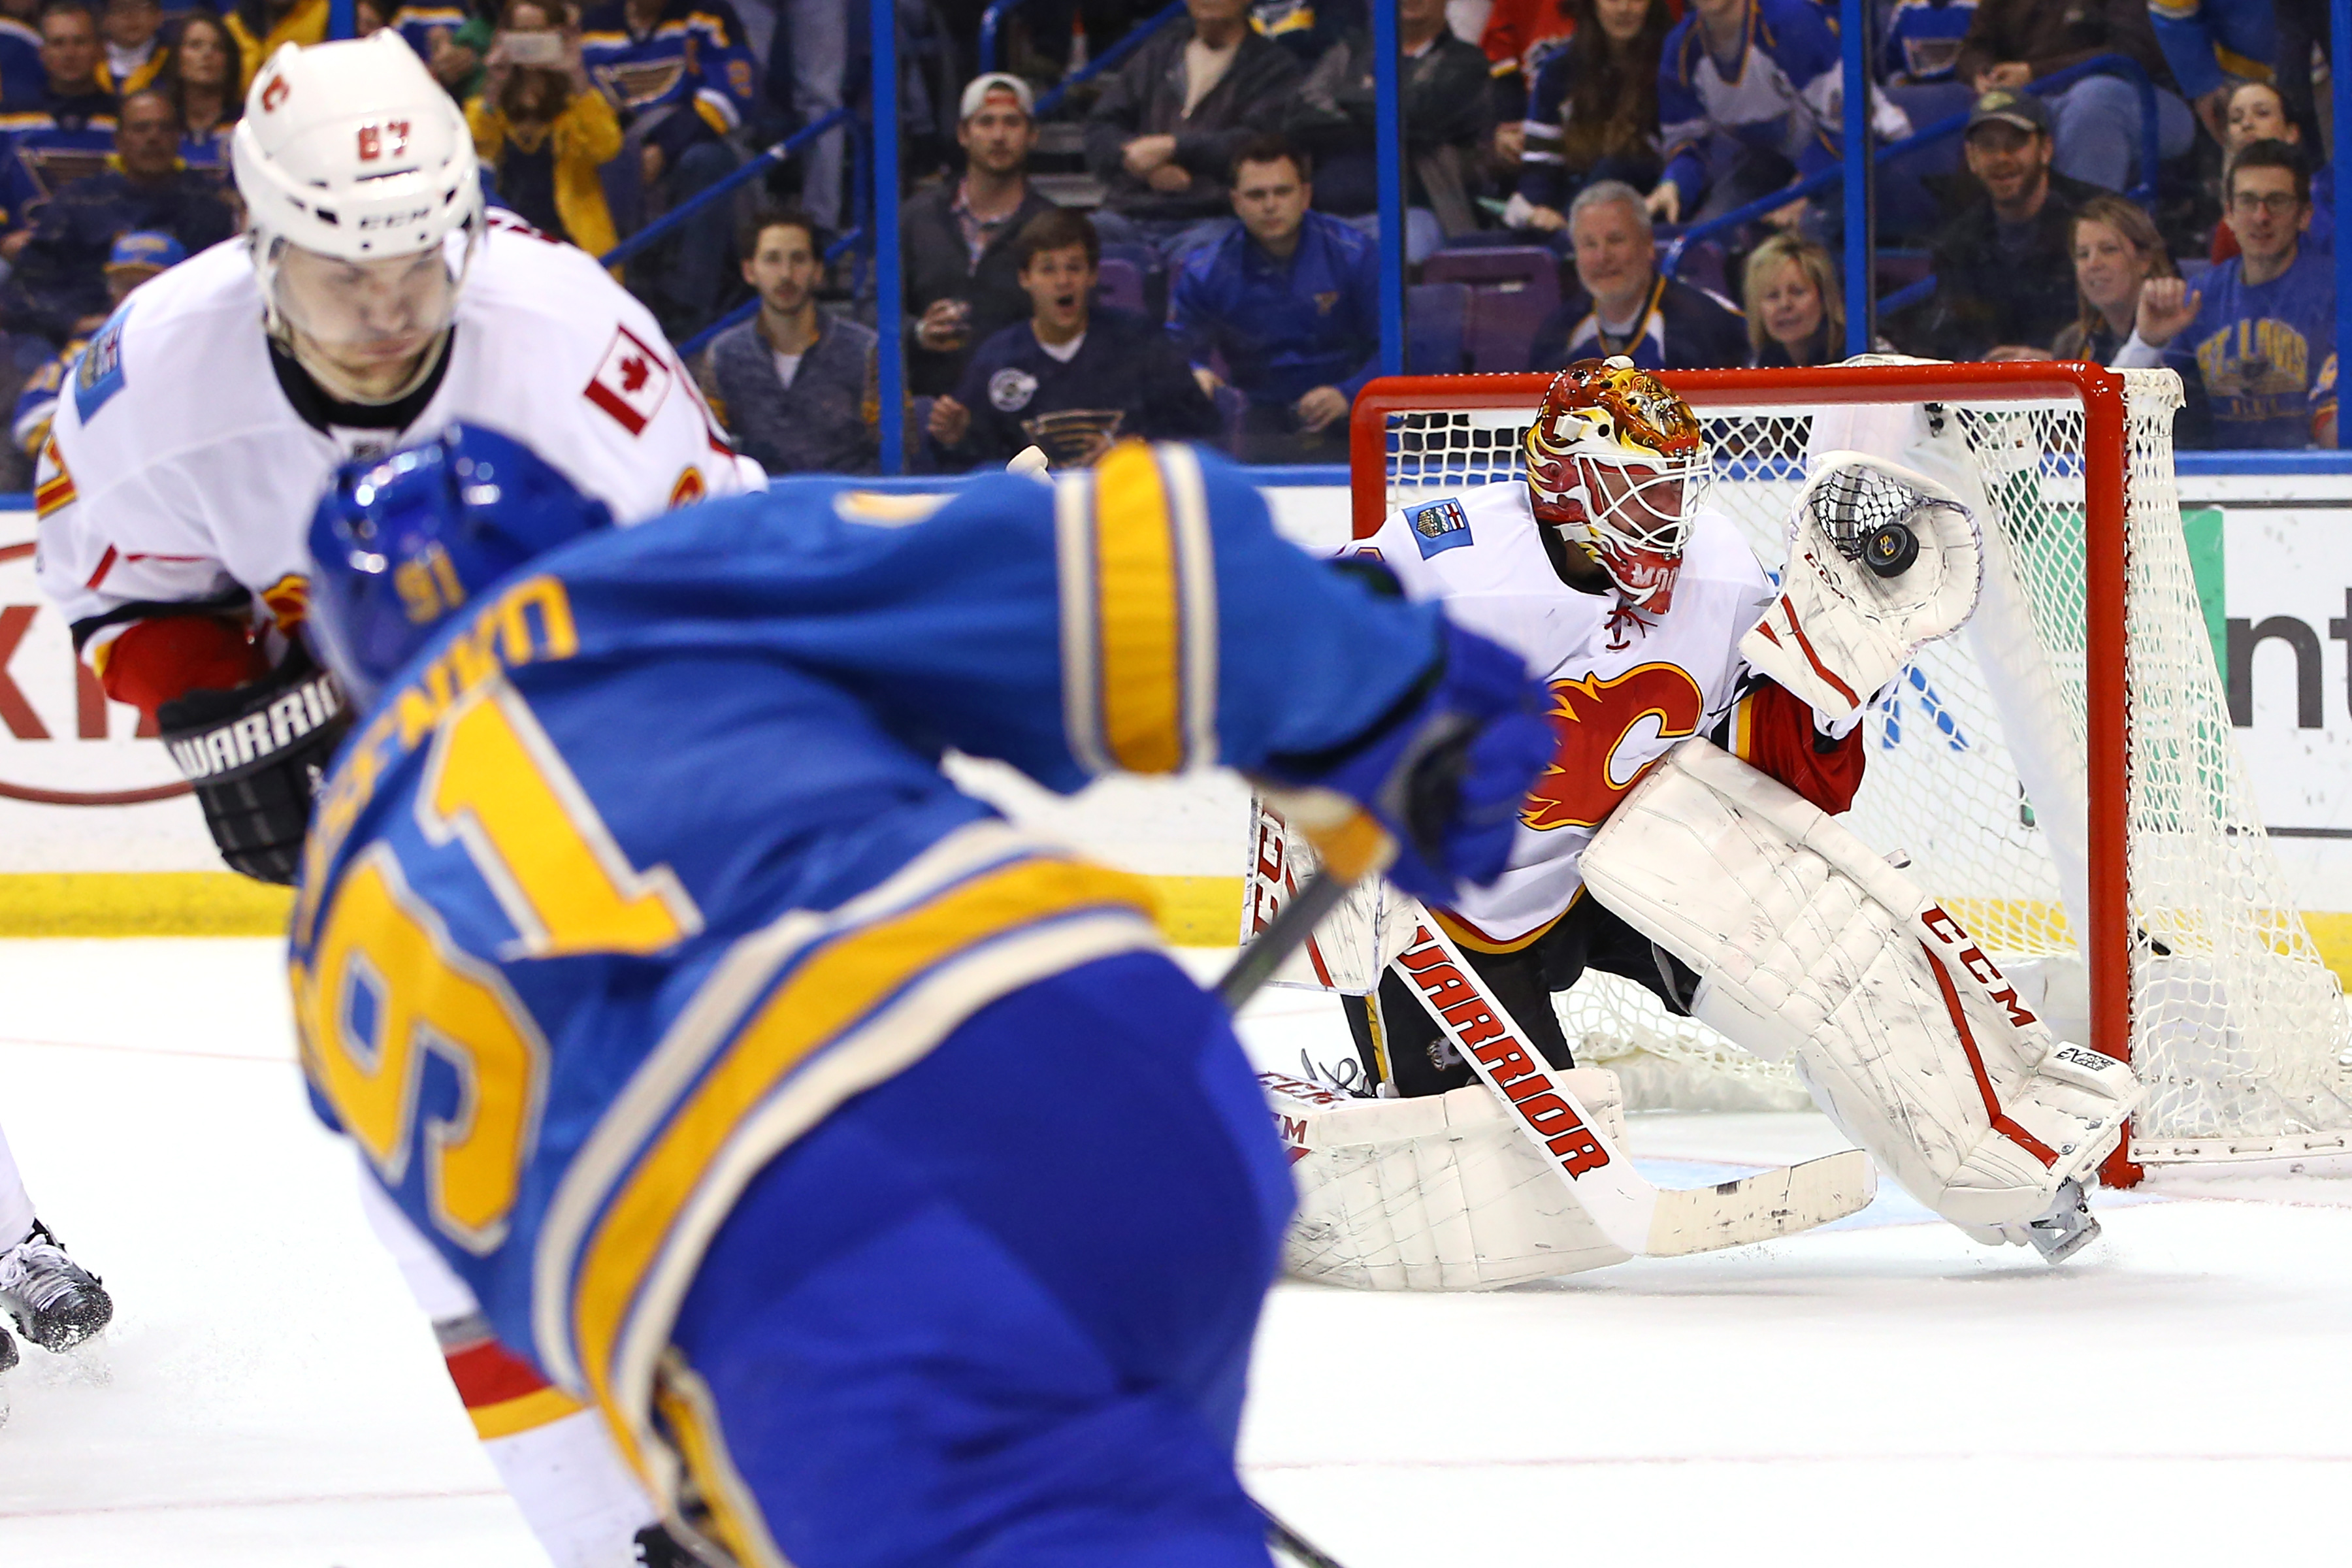 9970905-nhl-calgary-flames-at-st.-louis-blues